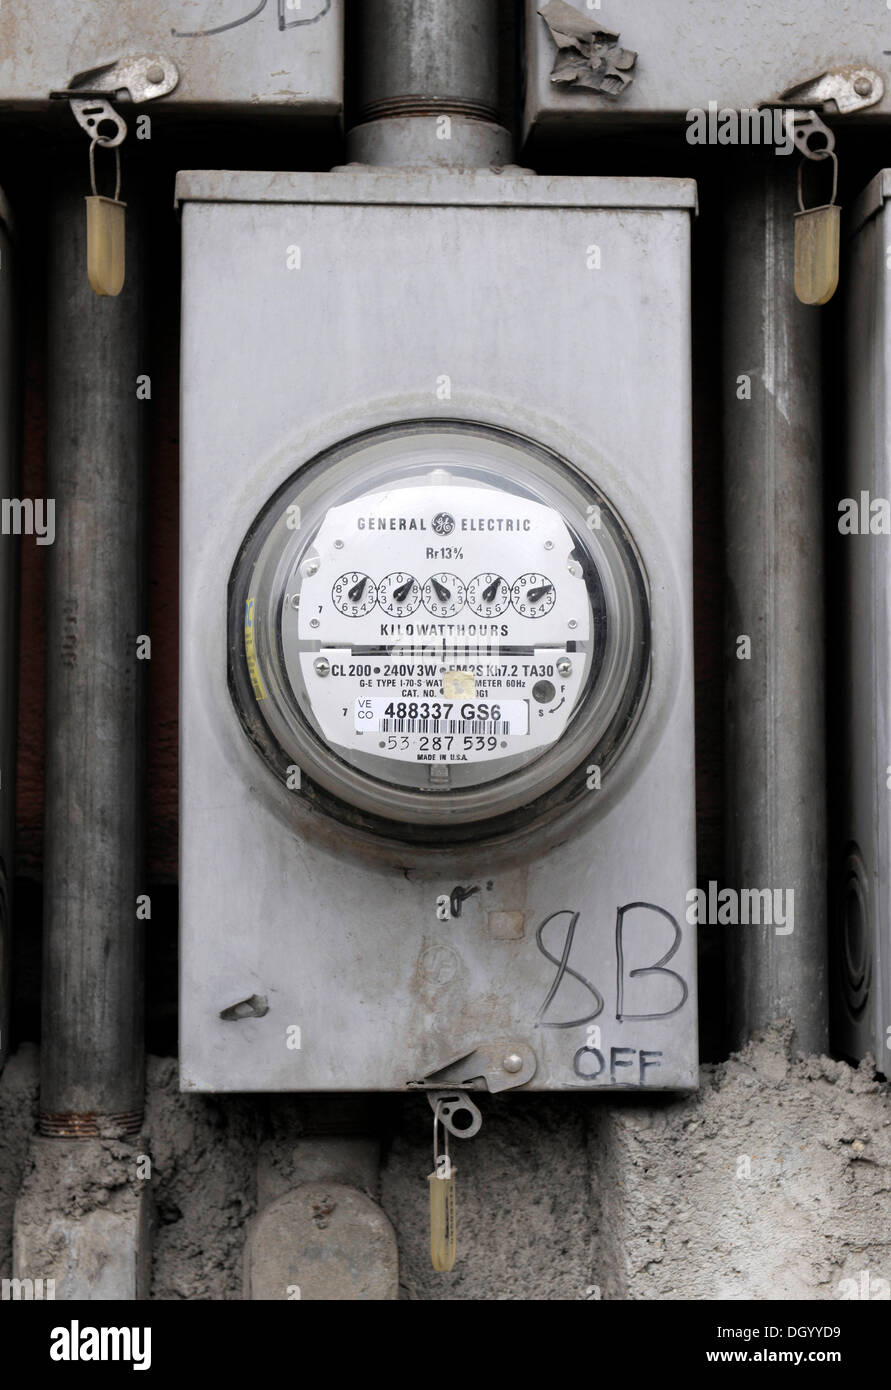 Electricity meter in Cebu, Philippines, Southeast Asia, Asia - Stock Image